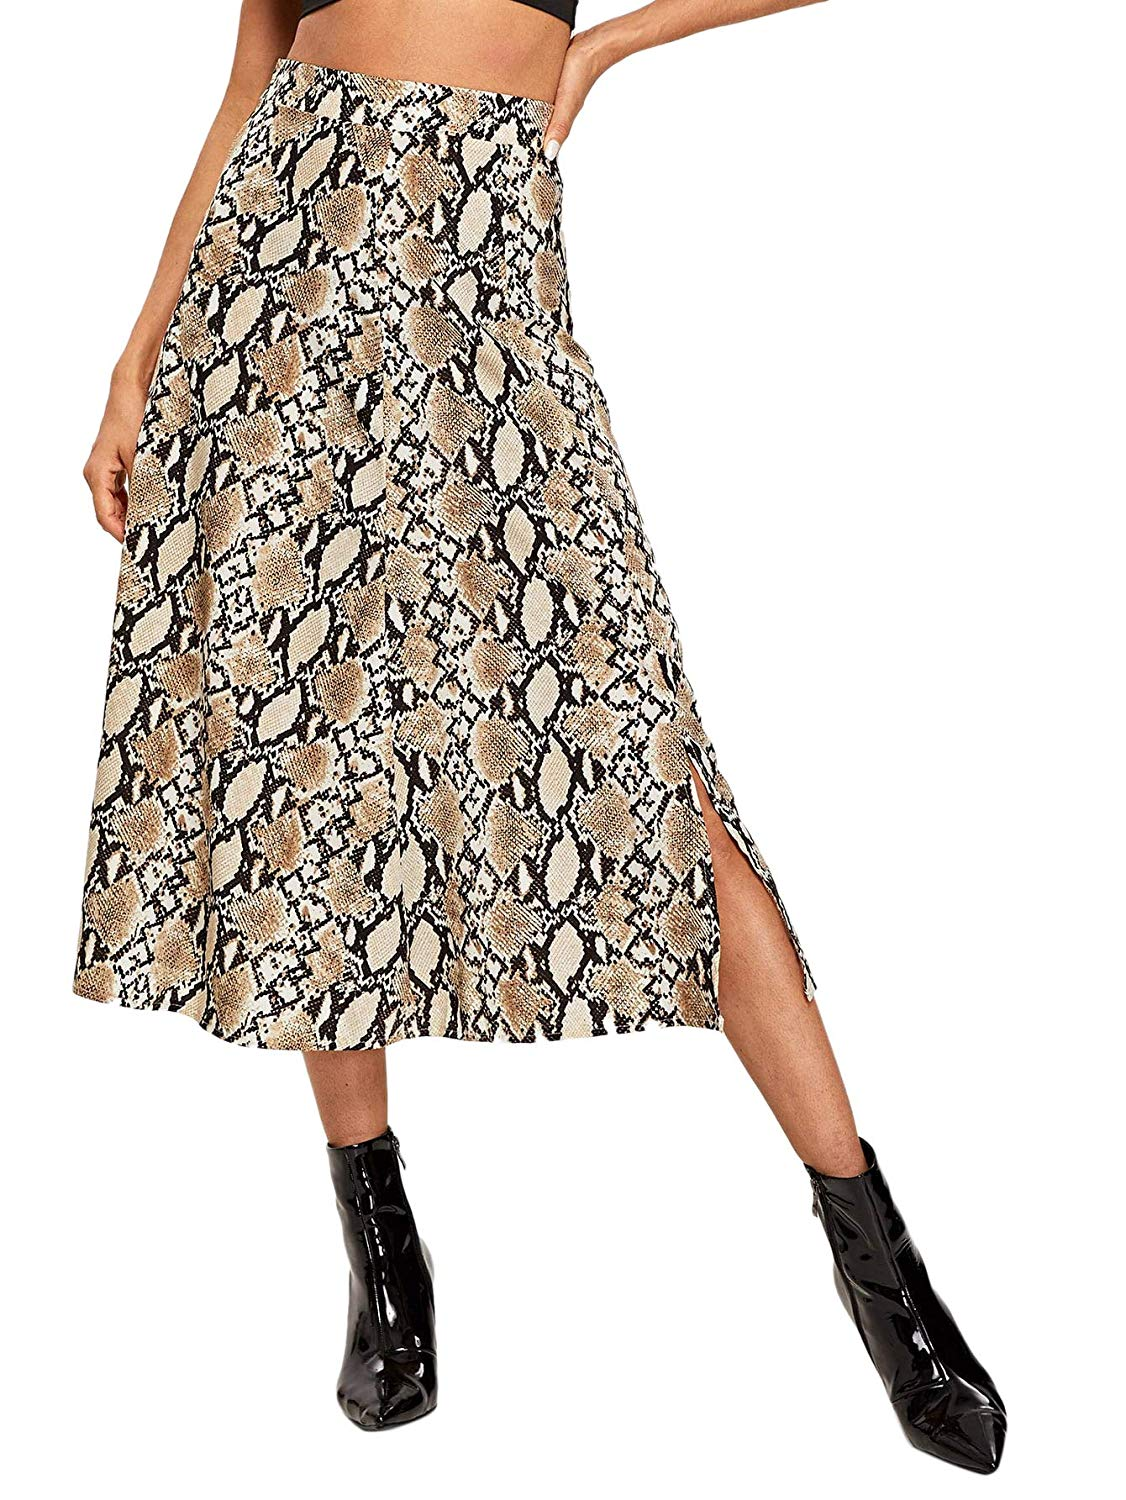 WDIRARA  — Women's Vintage Snake Skin Mid Waist Long Length Animal Print Skirt —  $16.99